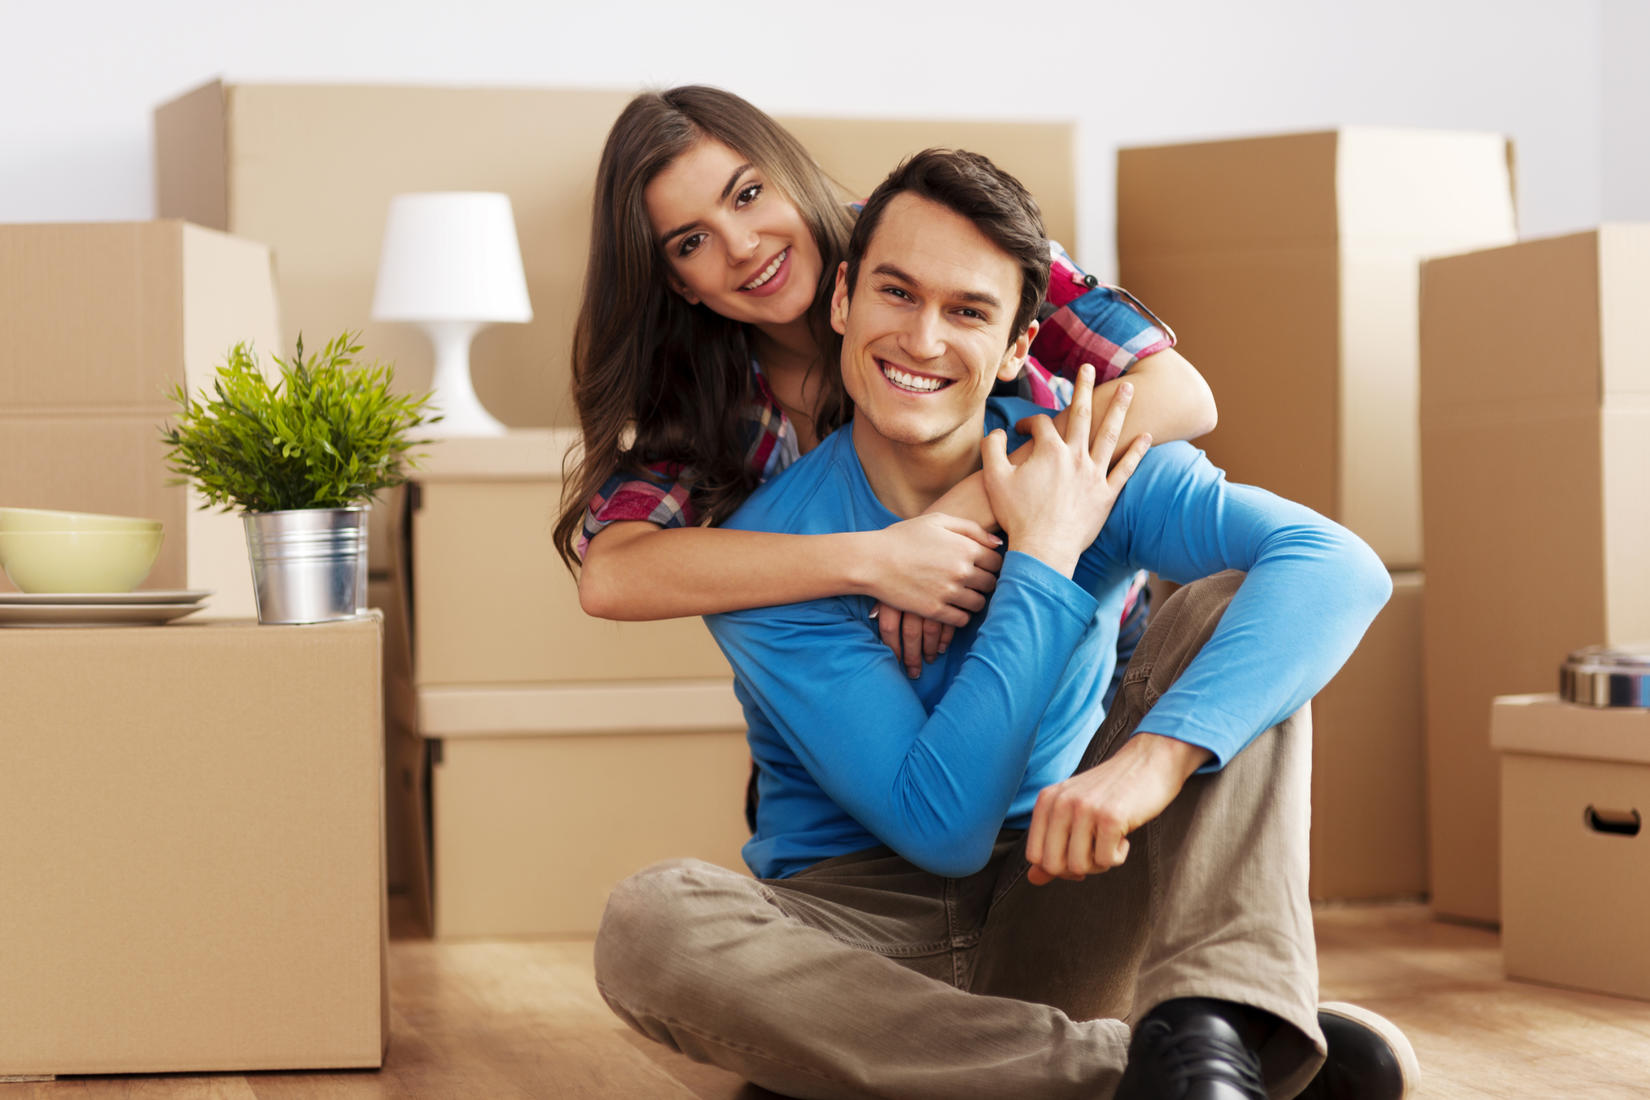 Home Services Coupons Amp Deals Near Houston Tx Localsaver